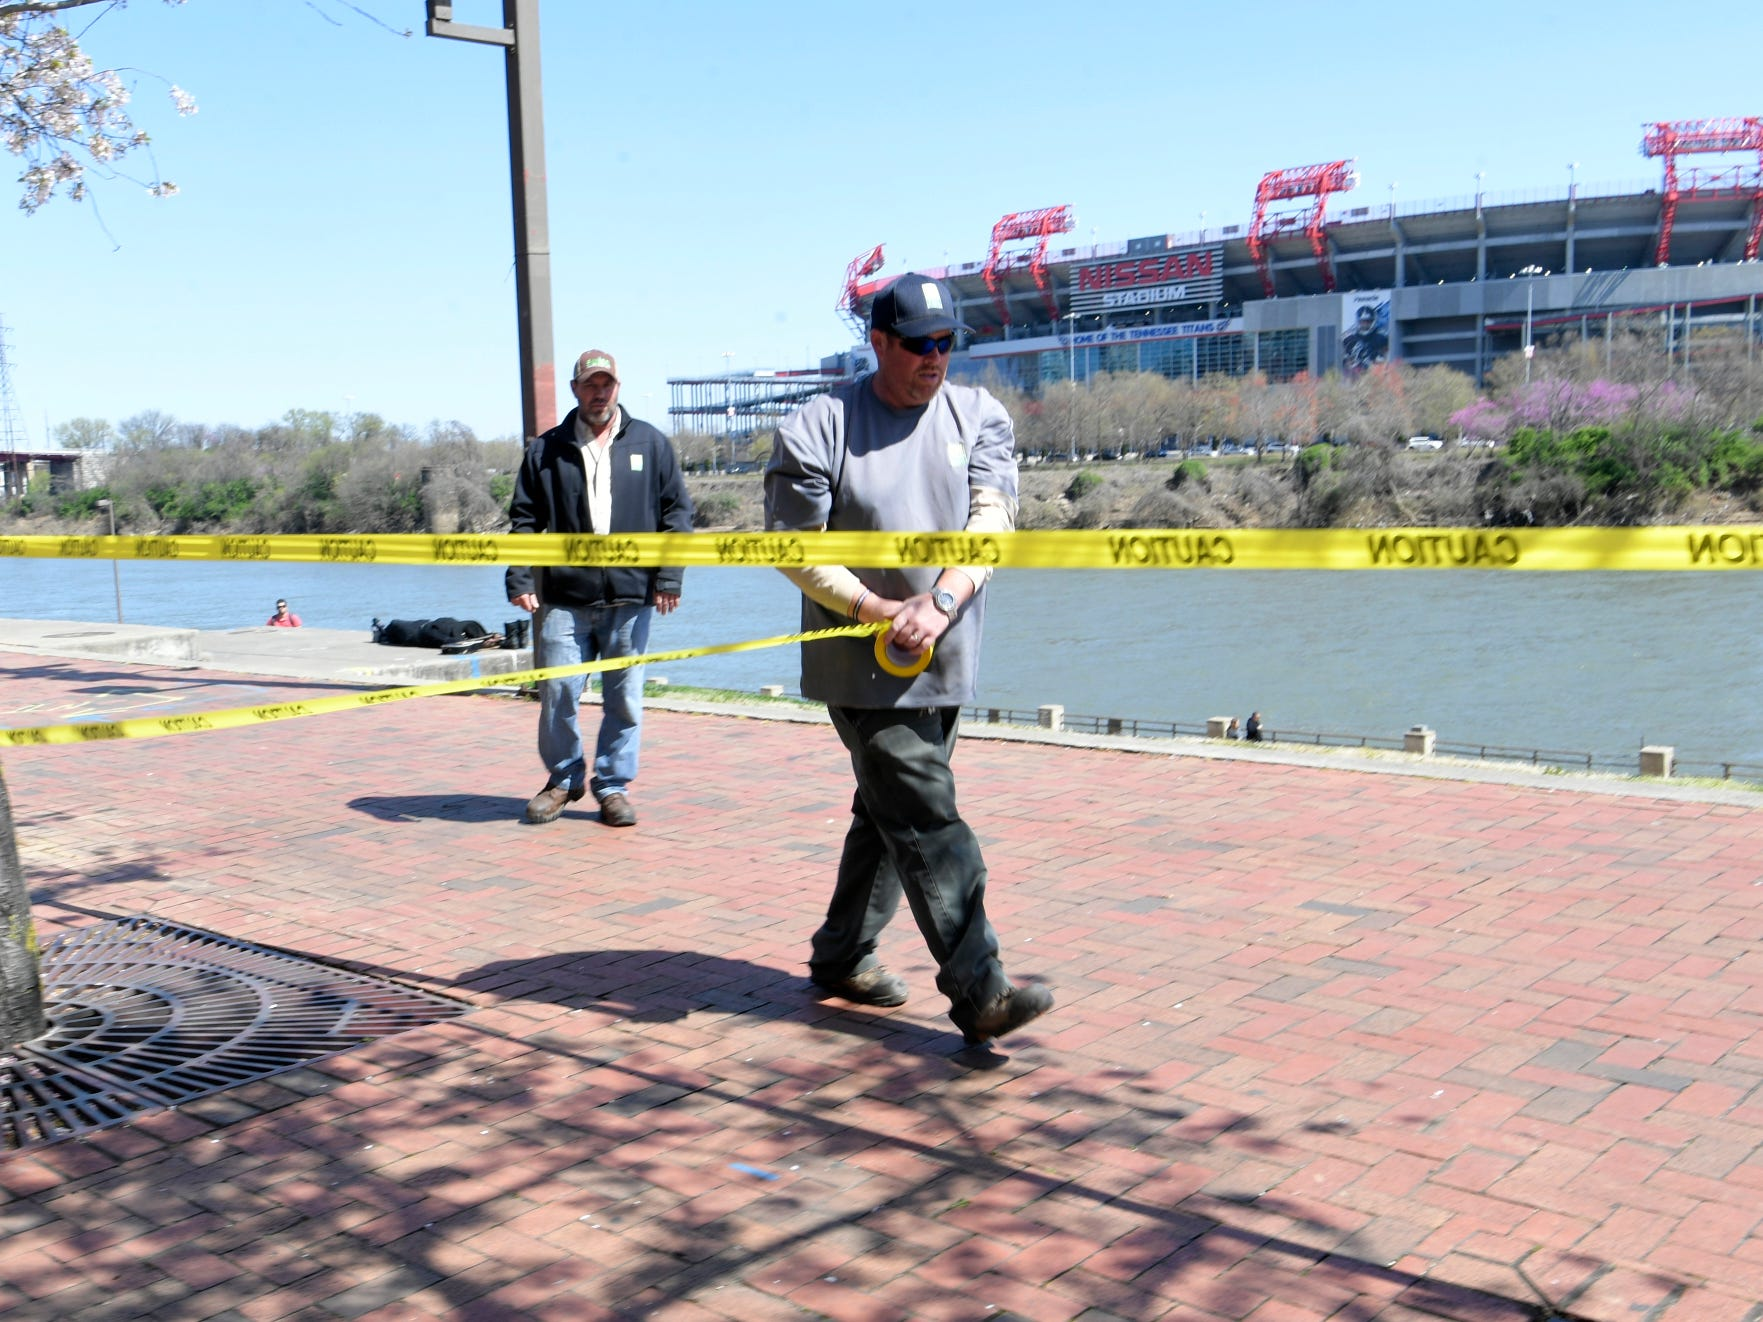 Metro Parks and Recreation workers begin prep work in anticipation of removing and transplant 10 Yoshino Cherry trees to make way for a giant stage for the upcoming NFL Draft.